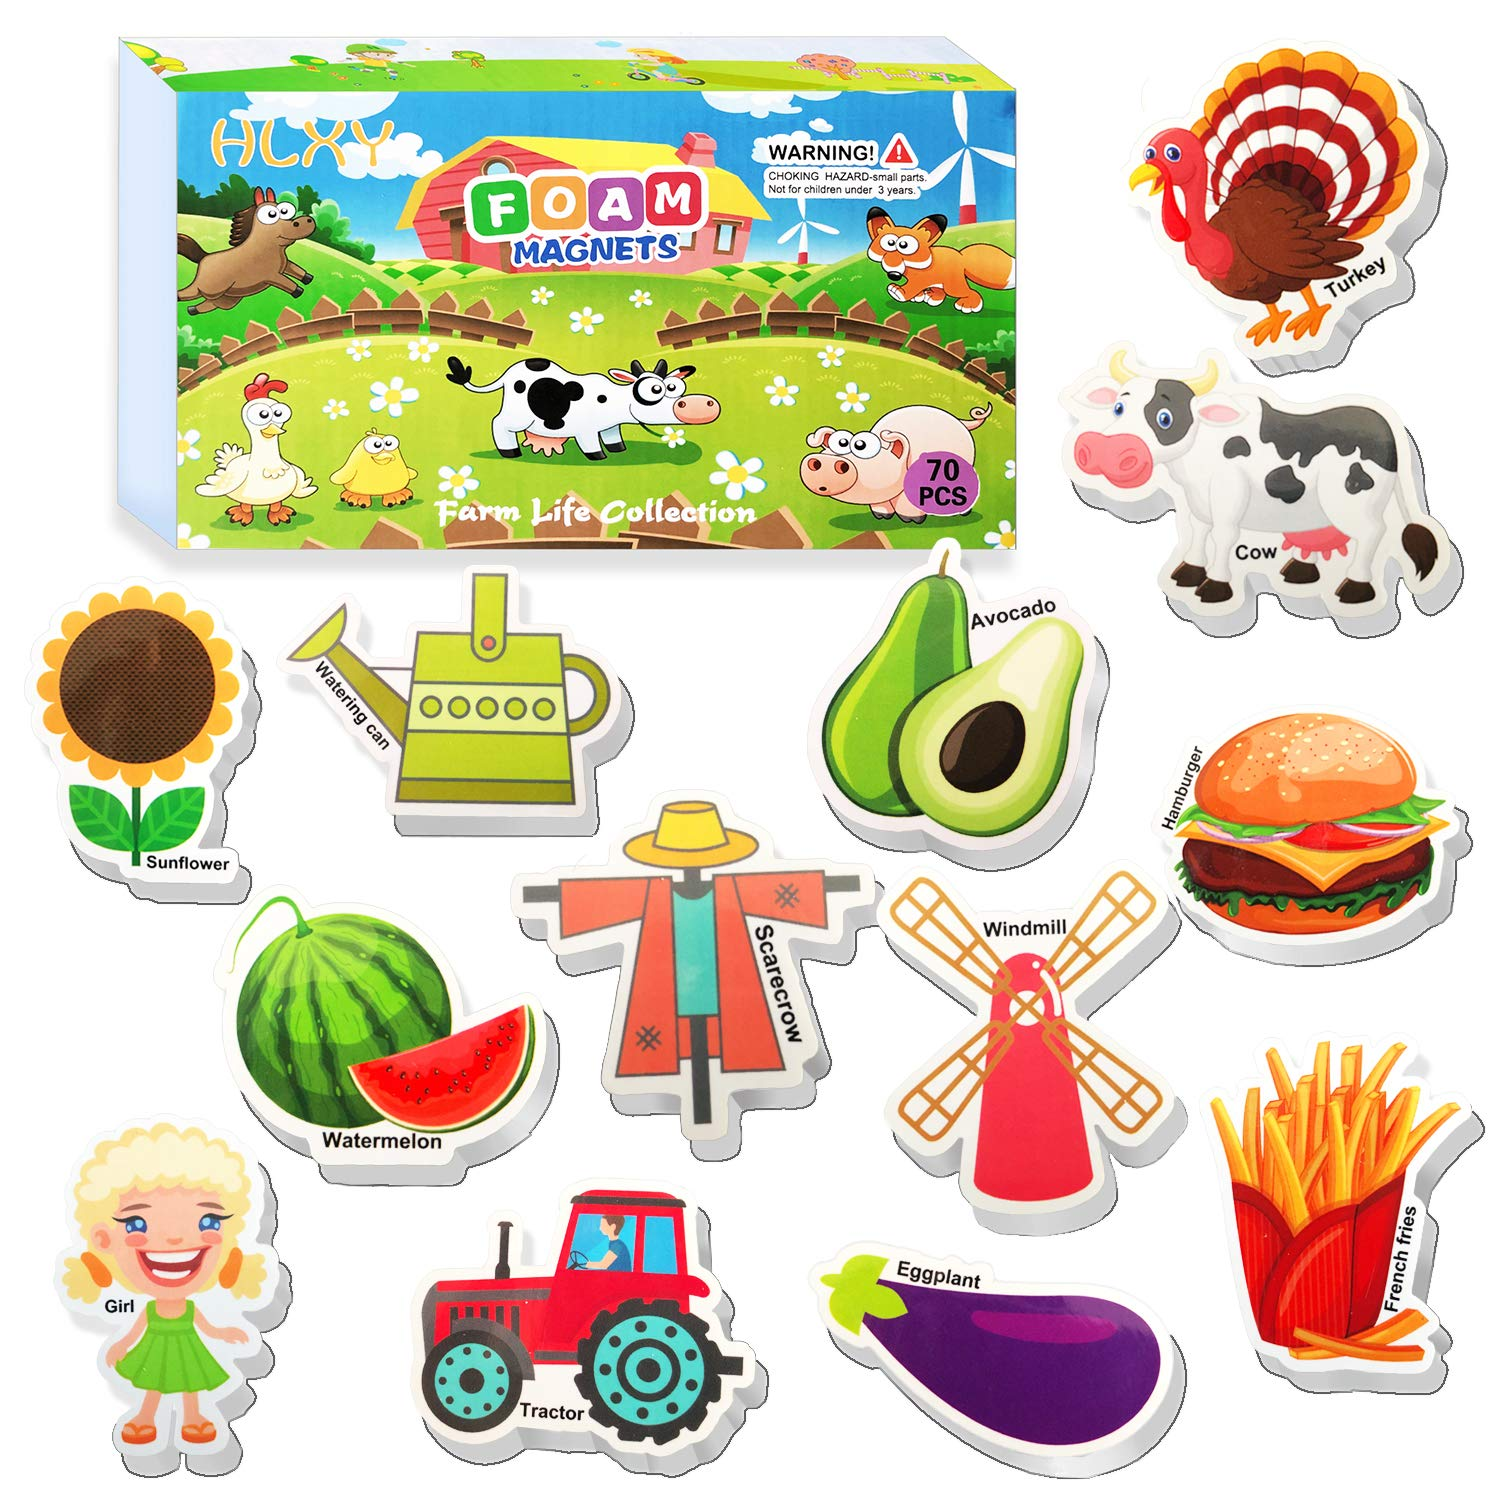 HLXY Fridge Magnets for Kids Toddlers Set of 70 Farm Animal Magnets - Foam Magnets - Fruit Vegetables Food Magnets - Developmental Baby Toddlers Early Learning Toys